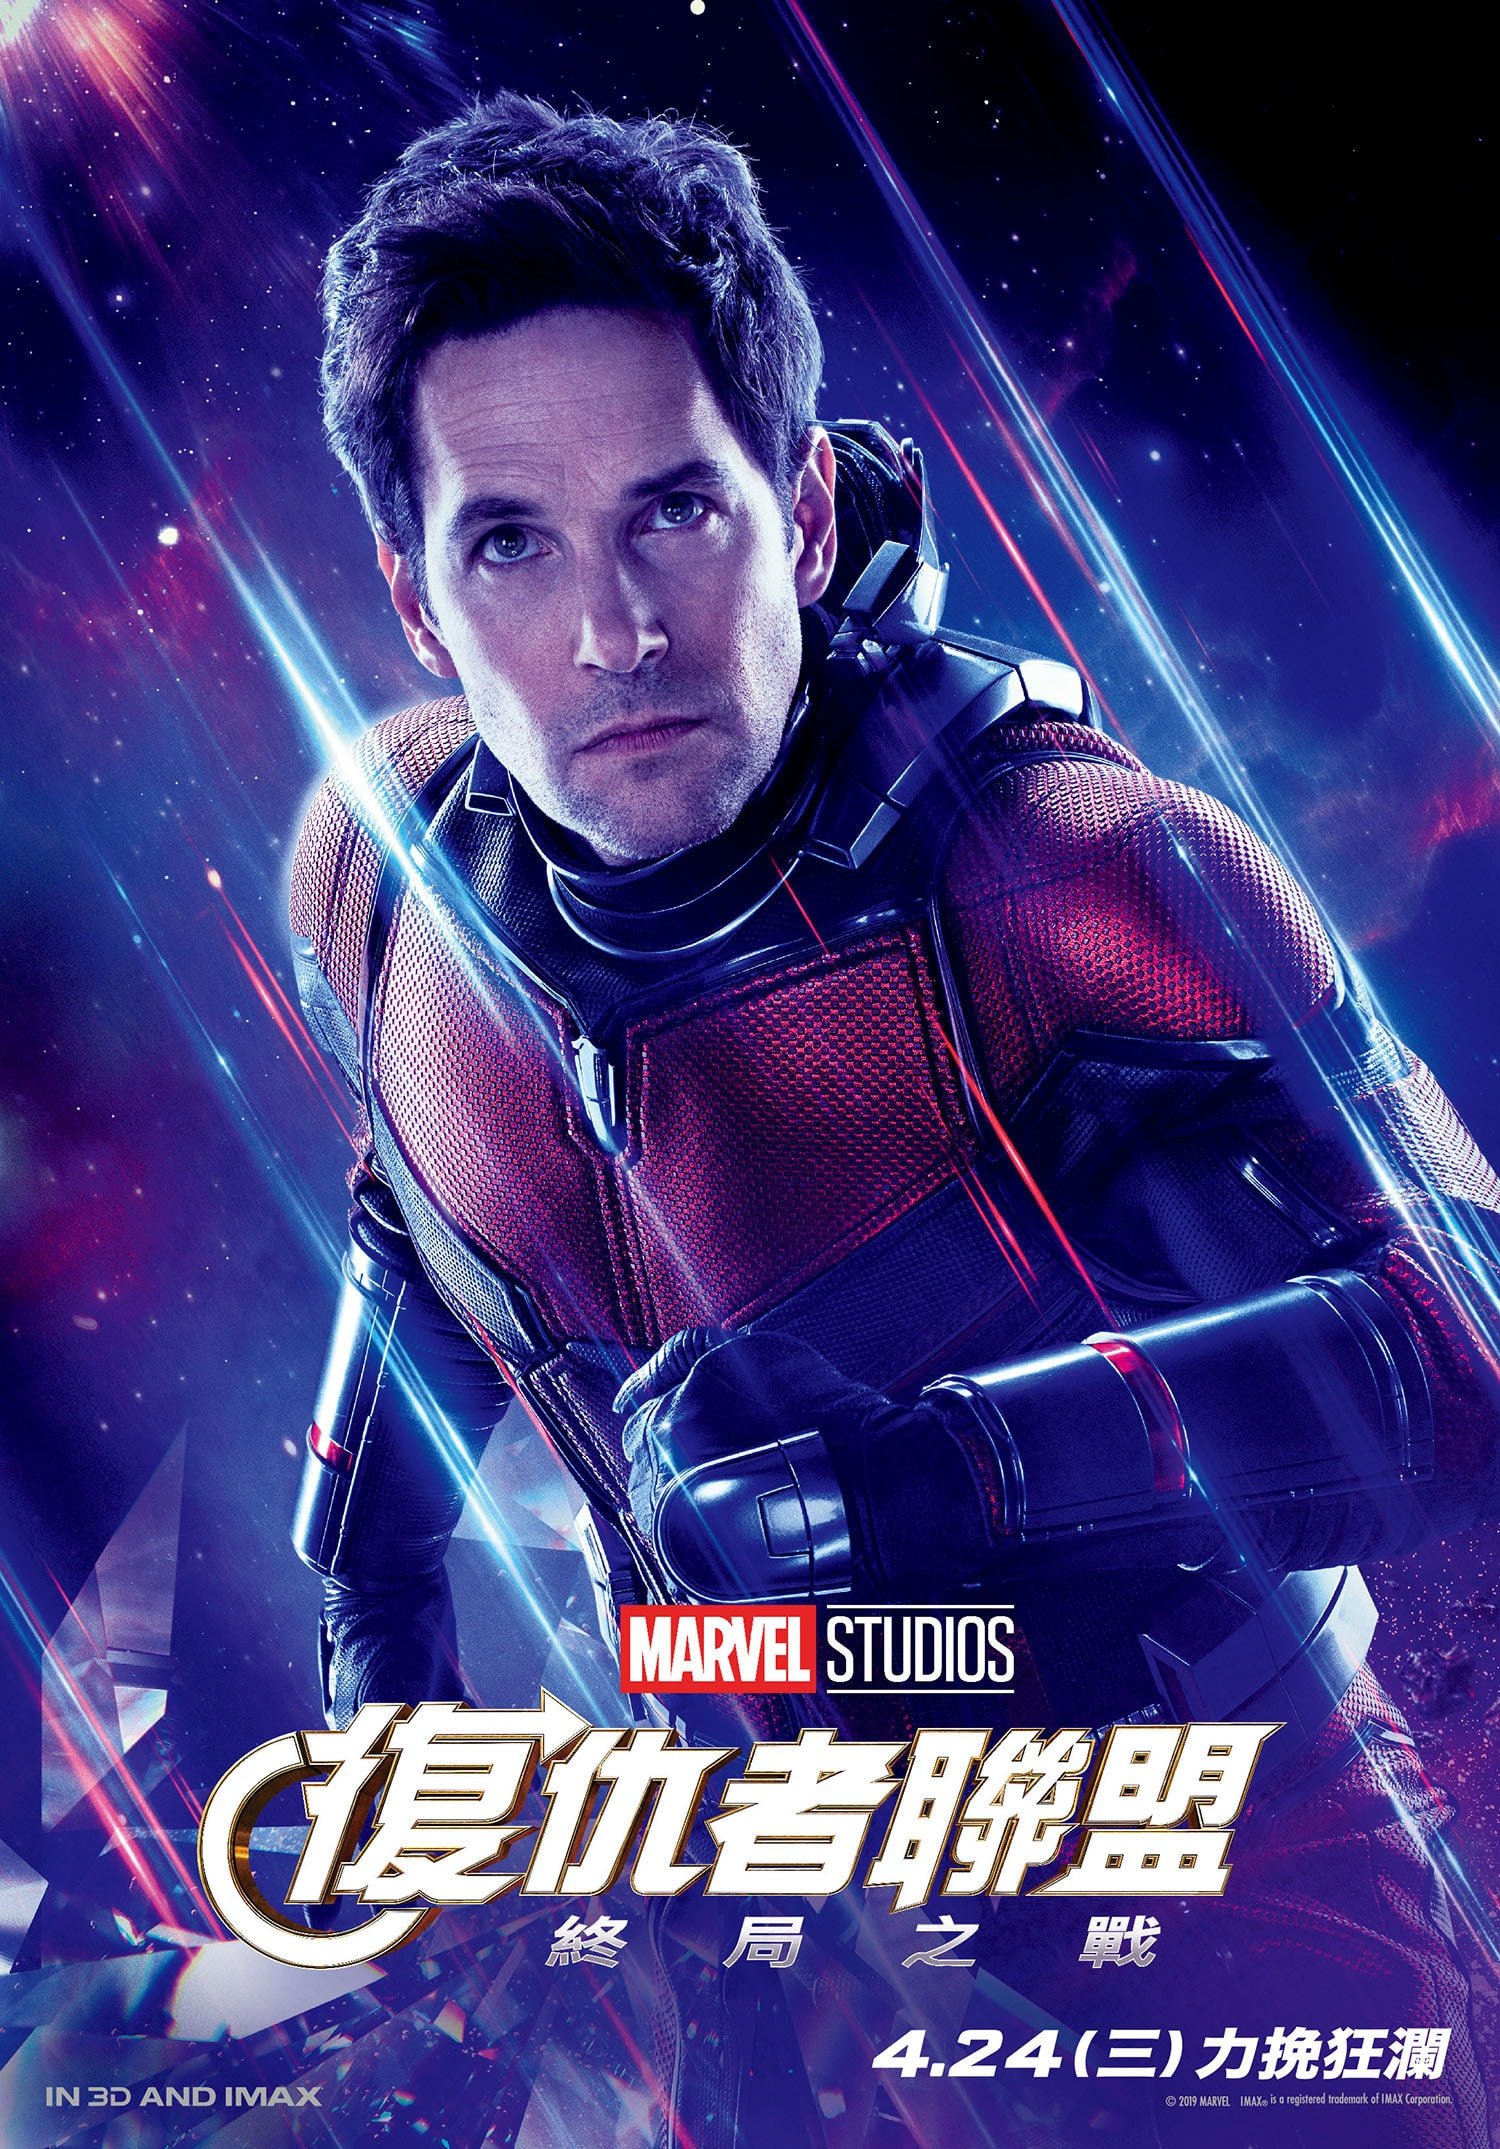 Avengers:End Game - Ant Man